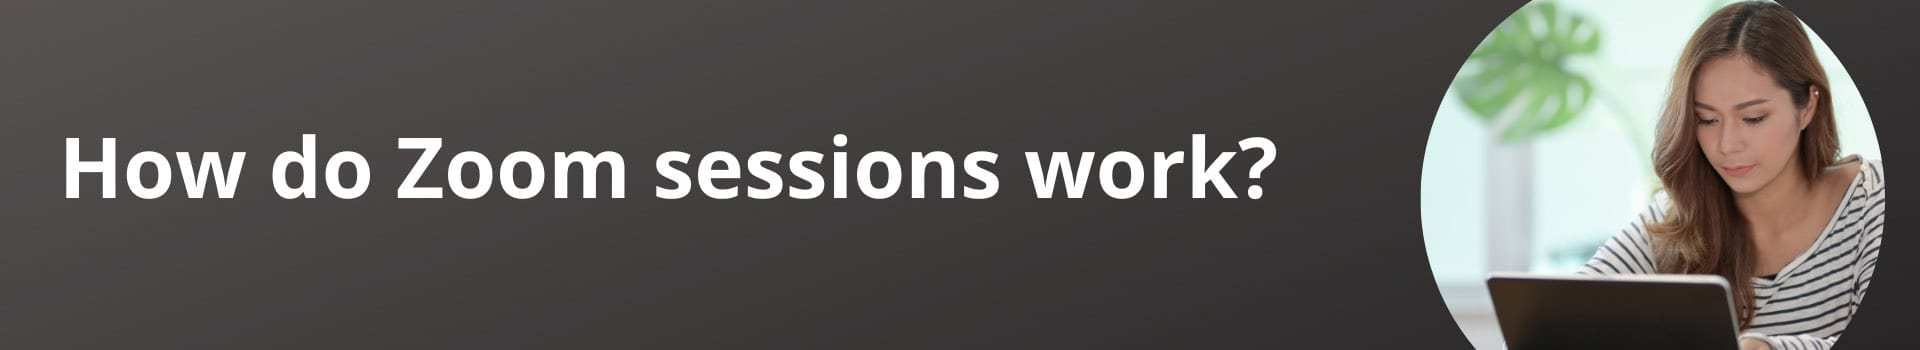 How do Zoom sessions work?